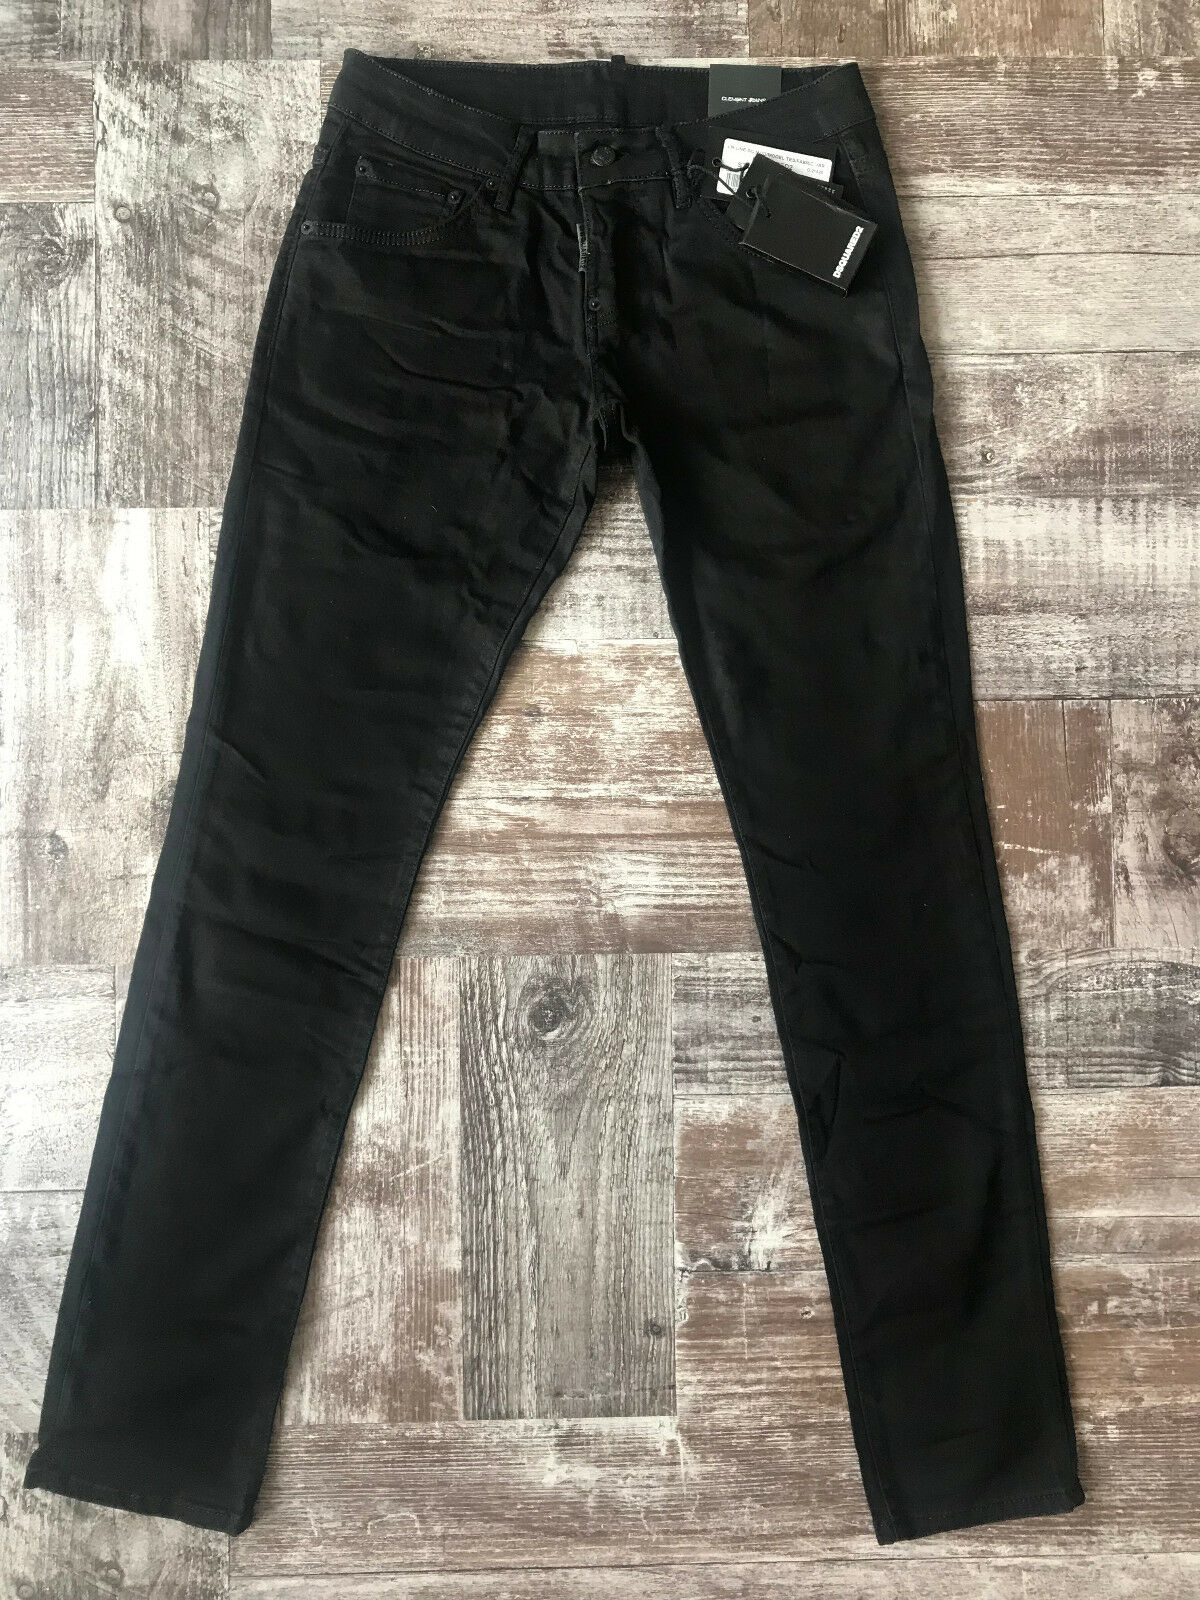 NEW Dsquared Jeans Waist 35    Inseam 33  SIZE 50